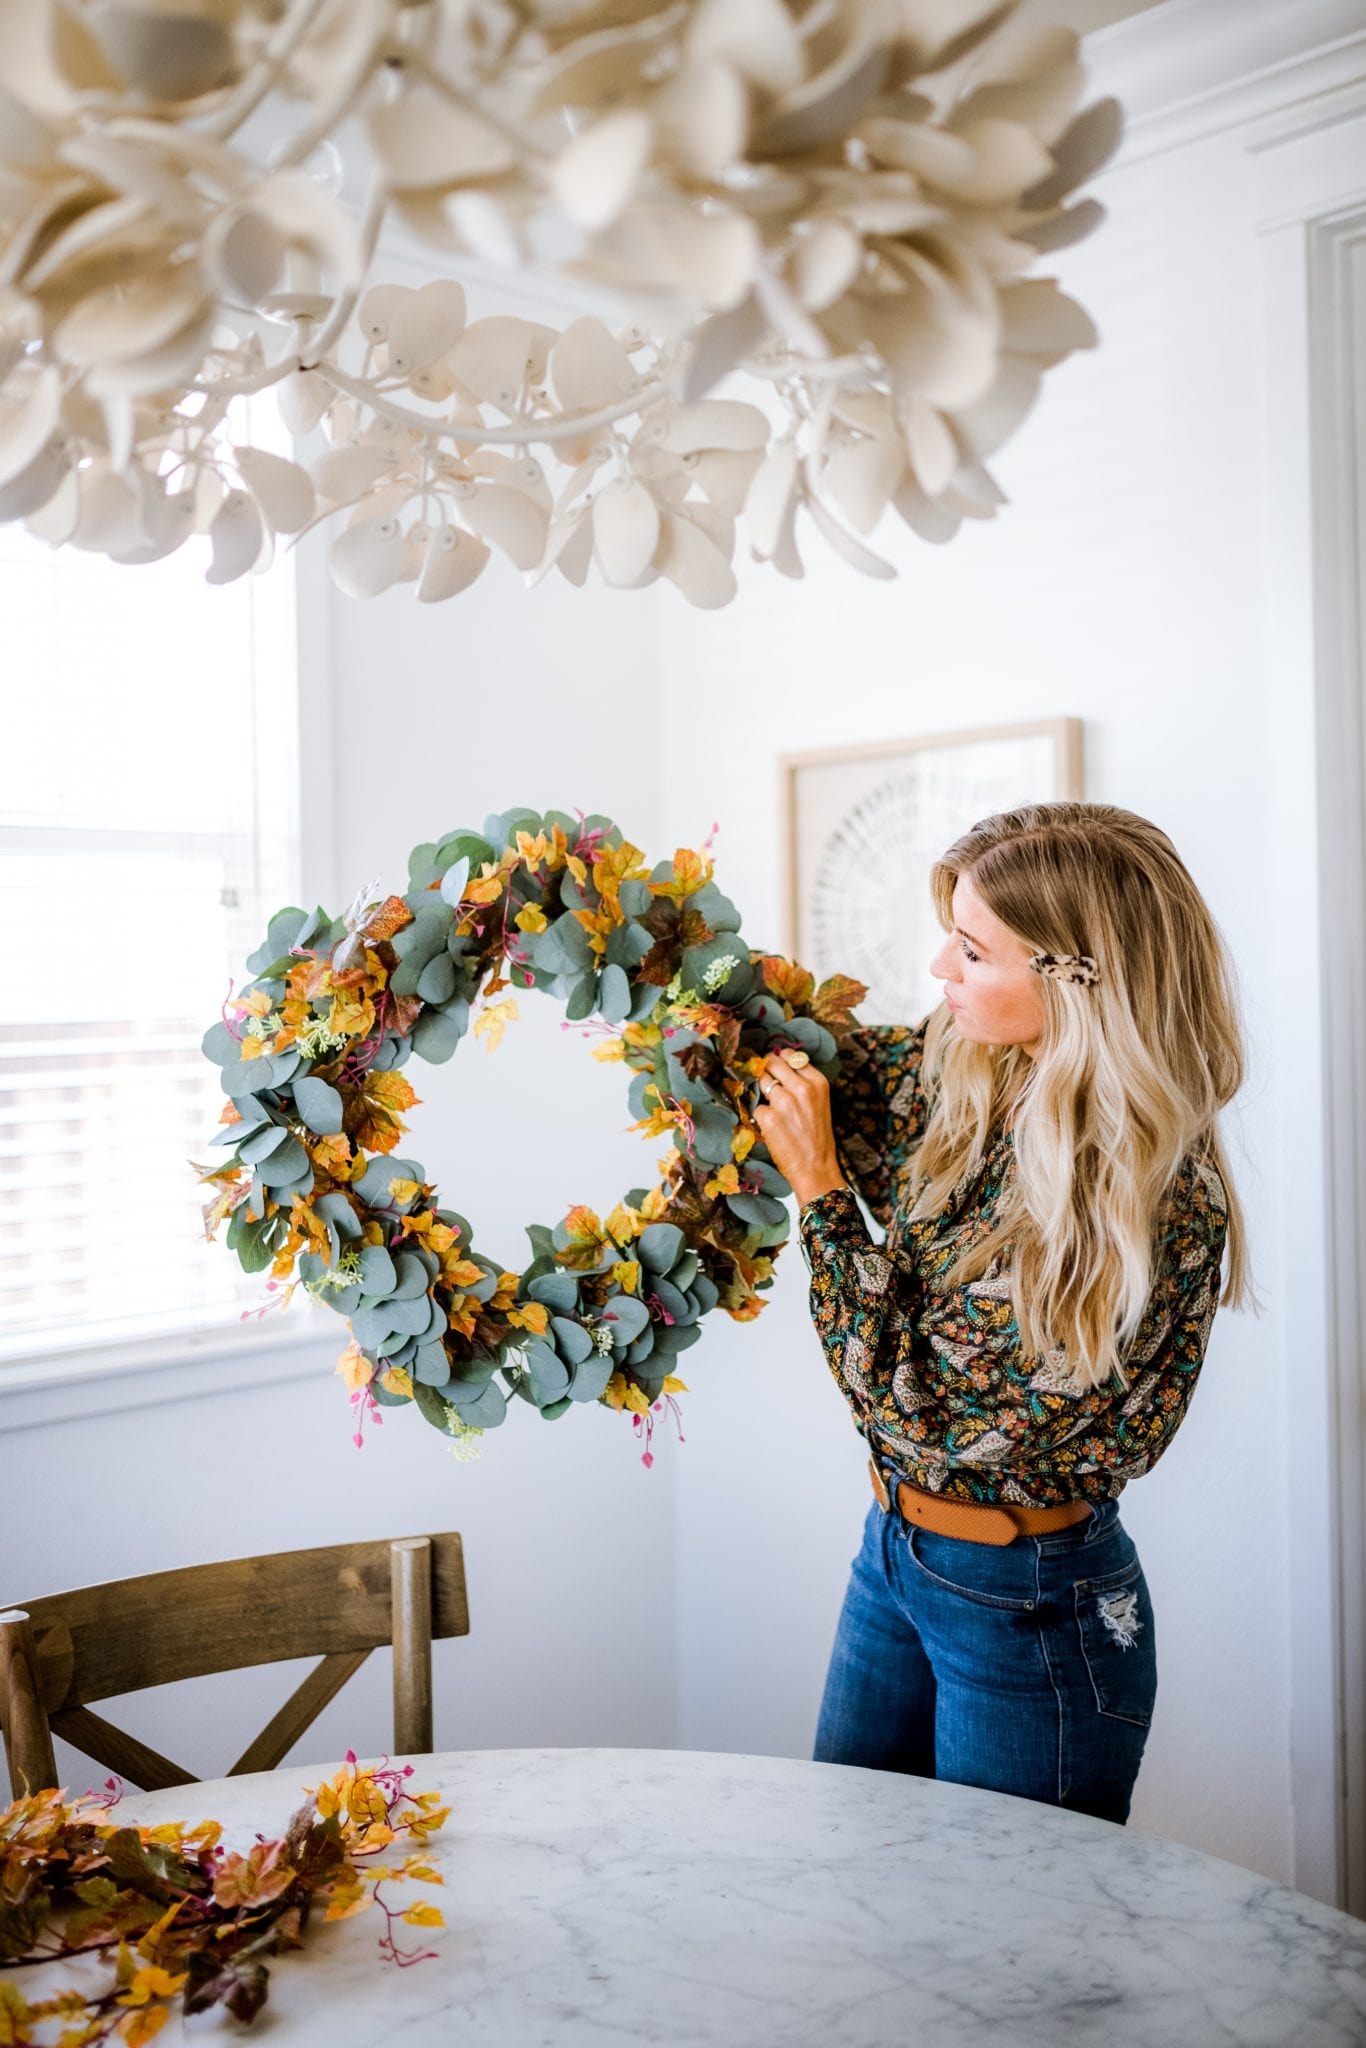 How to create a fall wreath for Halloween